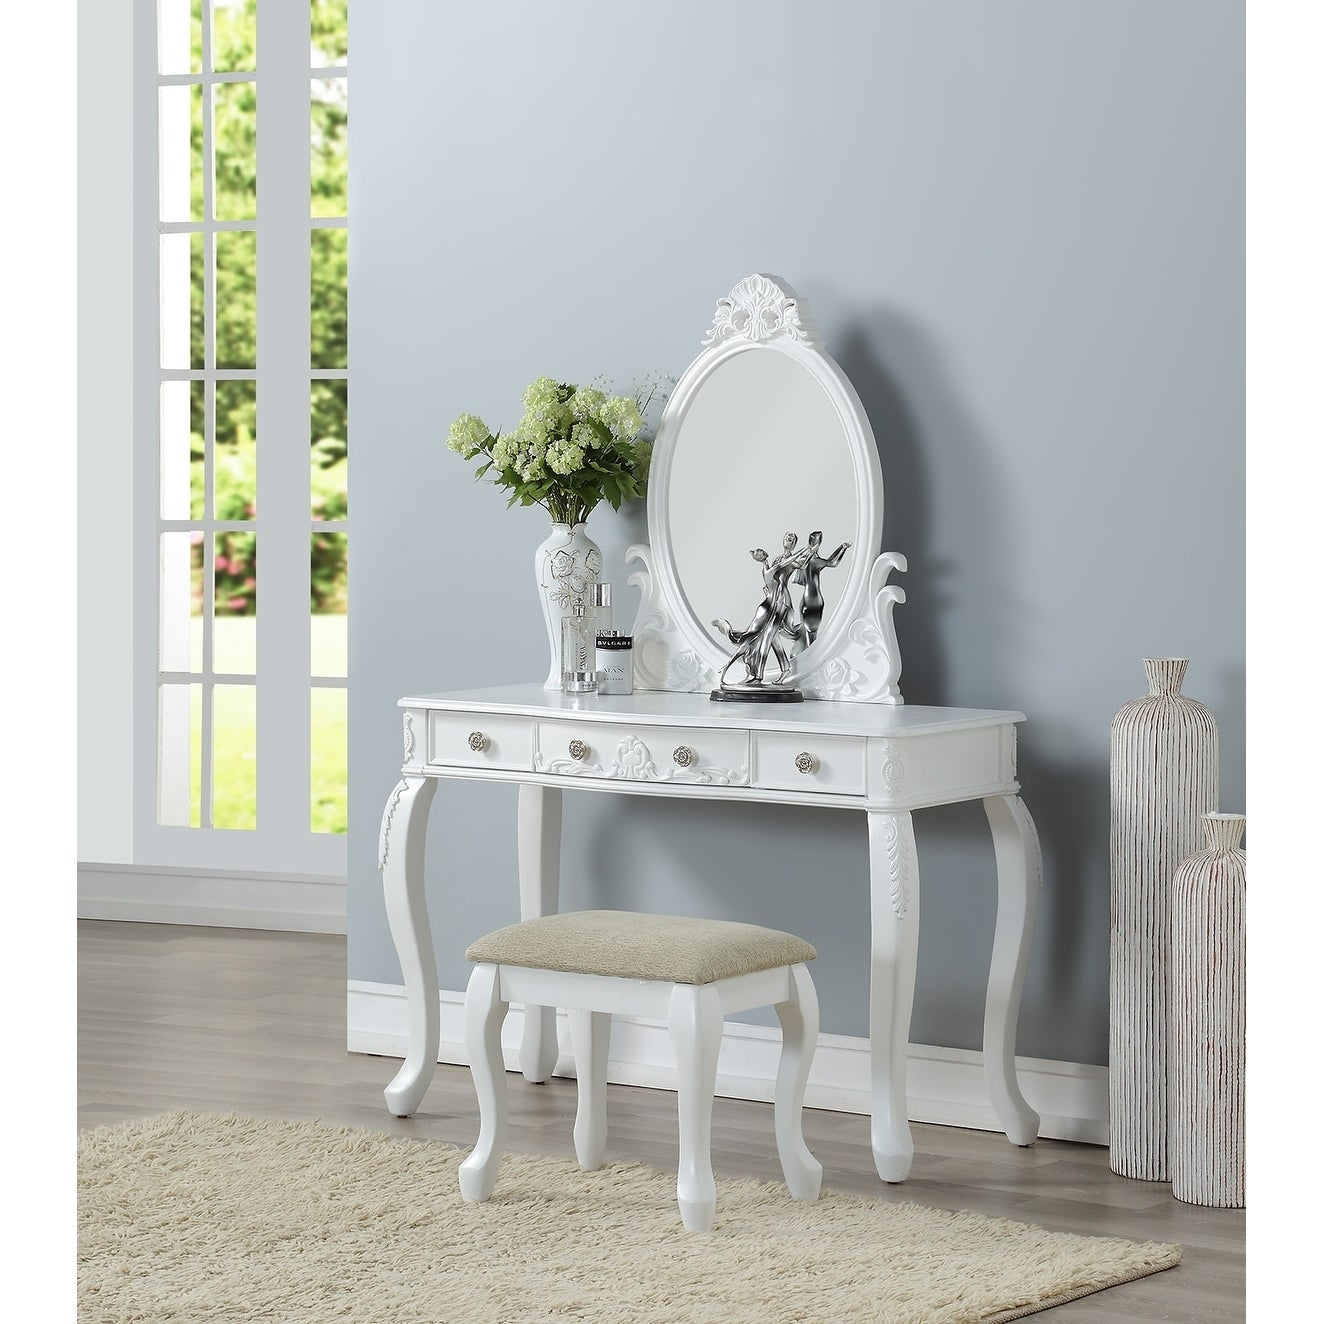 Bobkona White Wood Finish Oval Shape Mirror Vanity Set With Stool And 3 Drawers Overstock 21893190